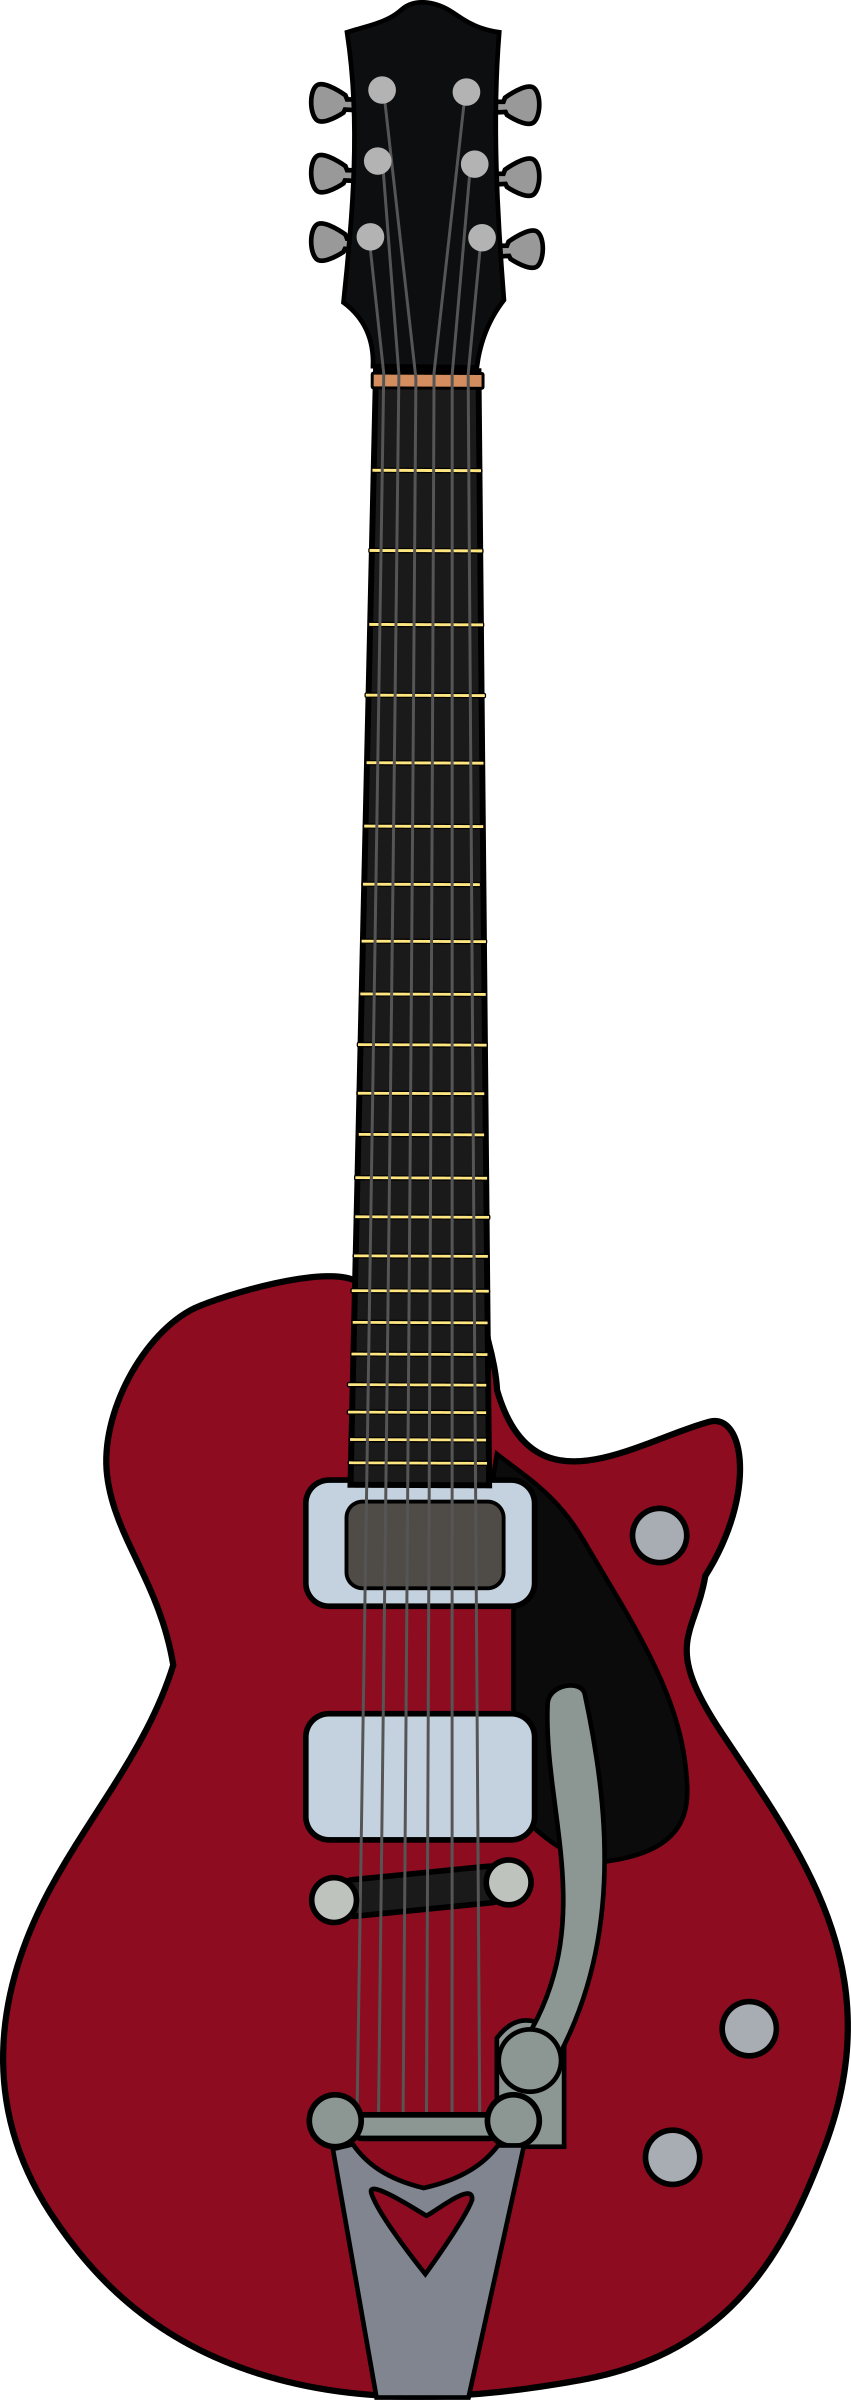 Gretsch Jet Firebird by Piemaster